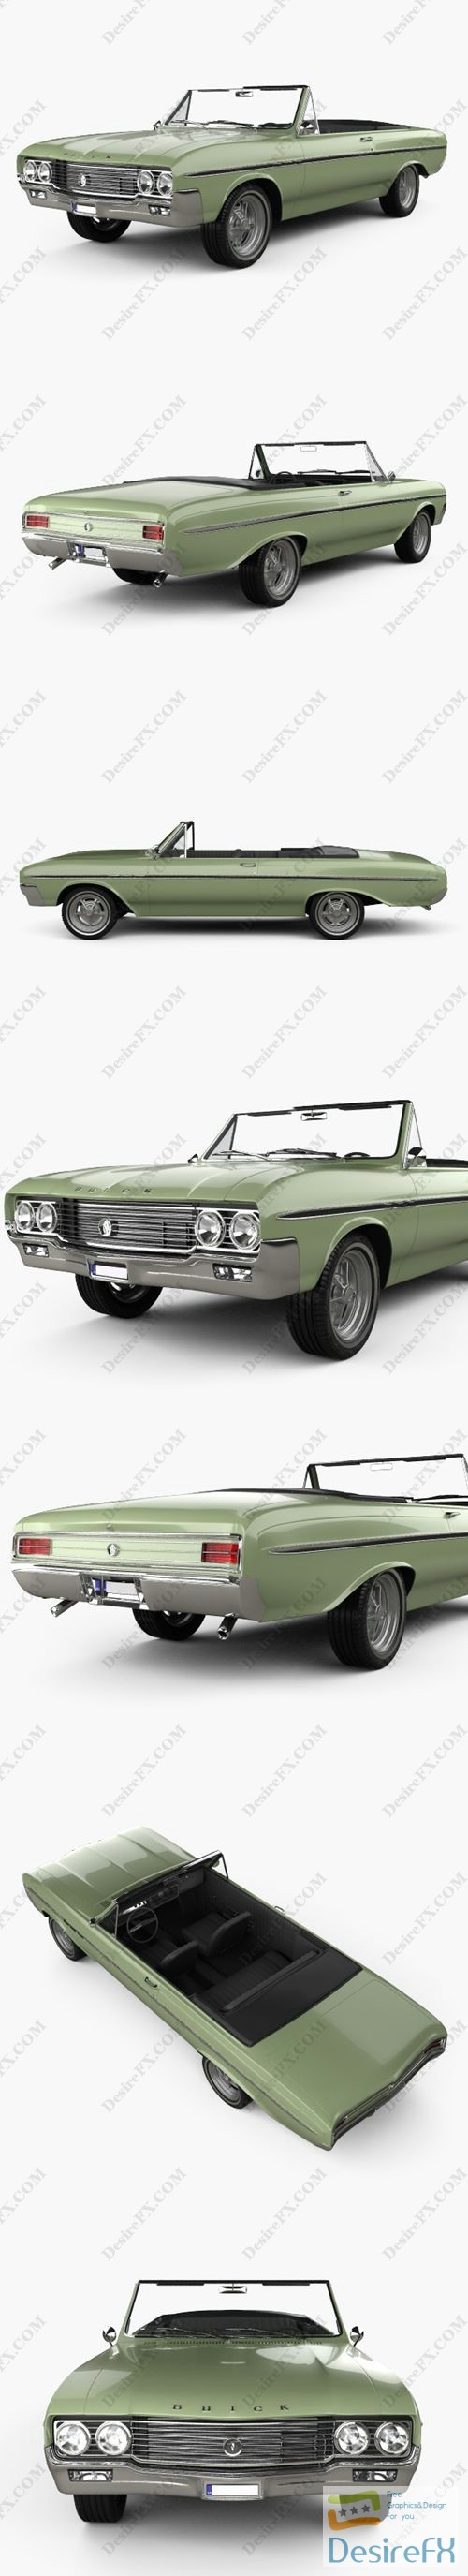 3d-models - Buick Skylark convertible 1964 3D Model